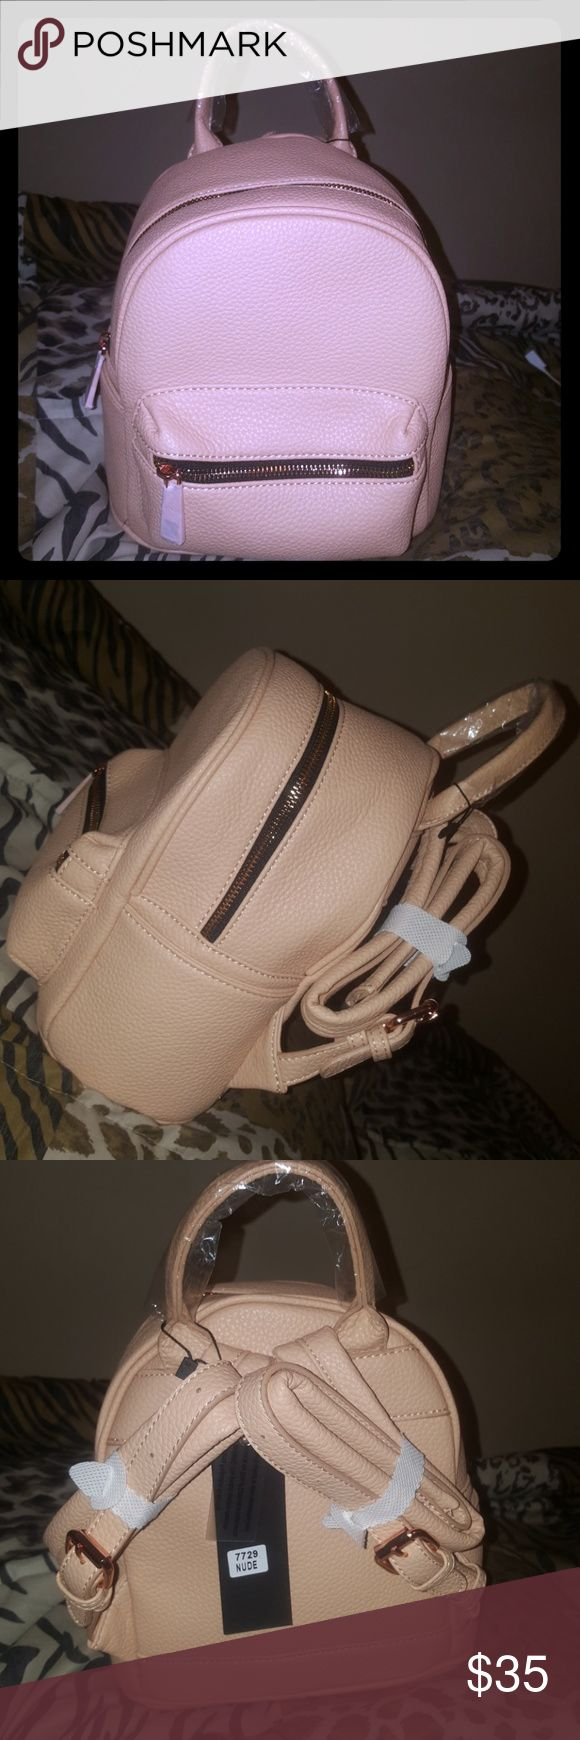 Blush Pink & Rose Gold Backpack Small Blush Pink & Rose Gold Backpack with 2 side pockets & 3 inside compartments along with front zipper pocket Bags Backpacks